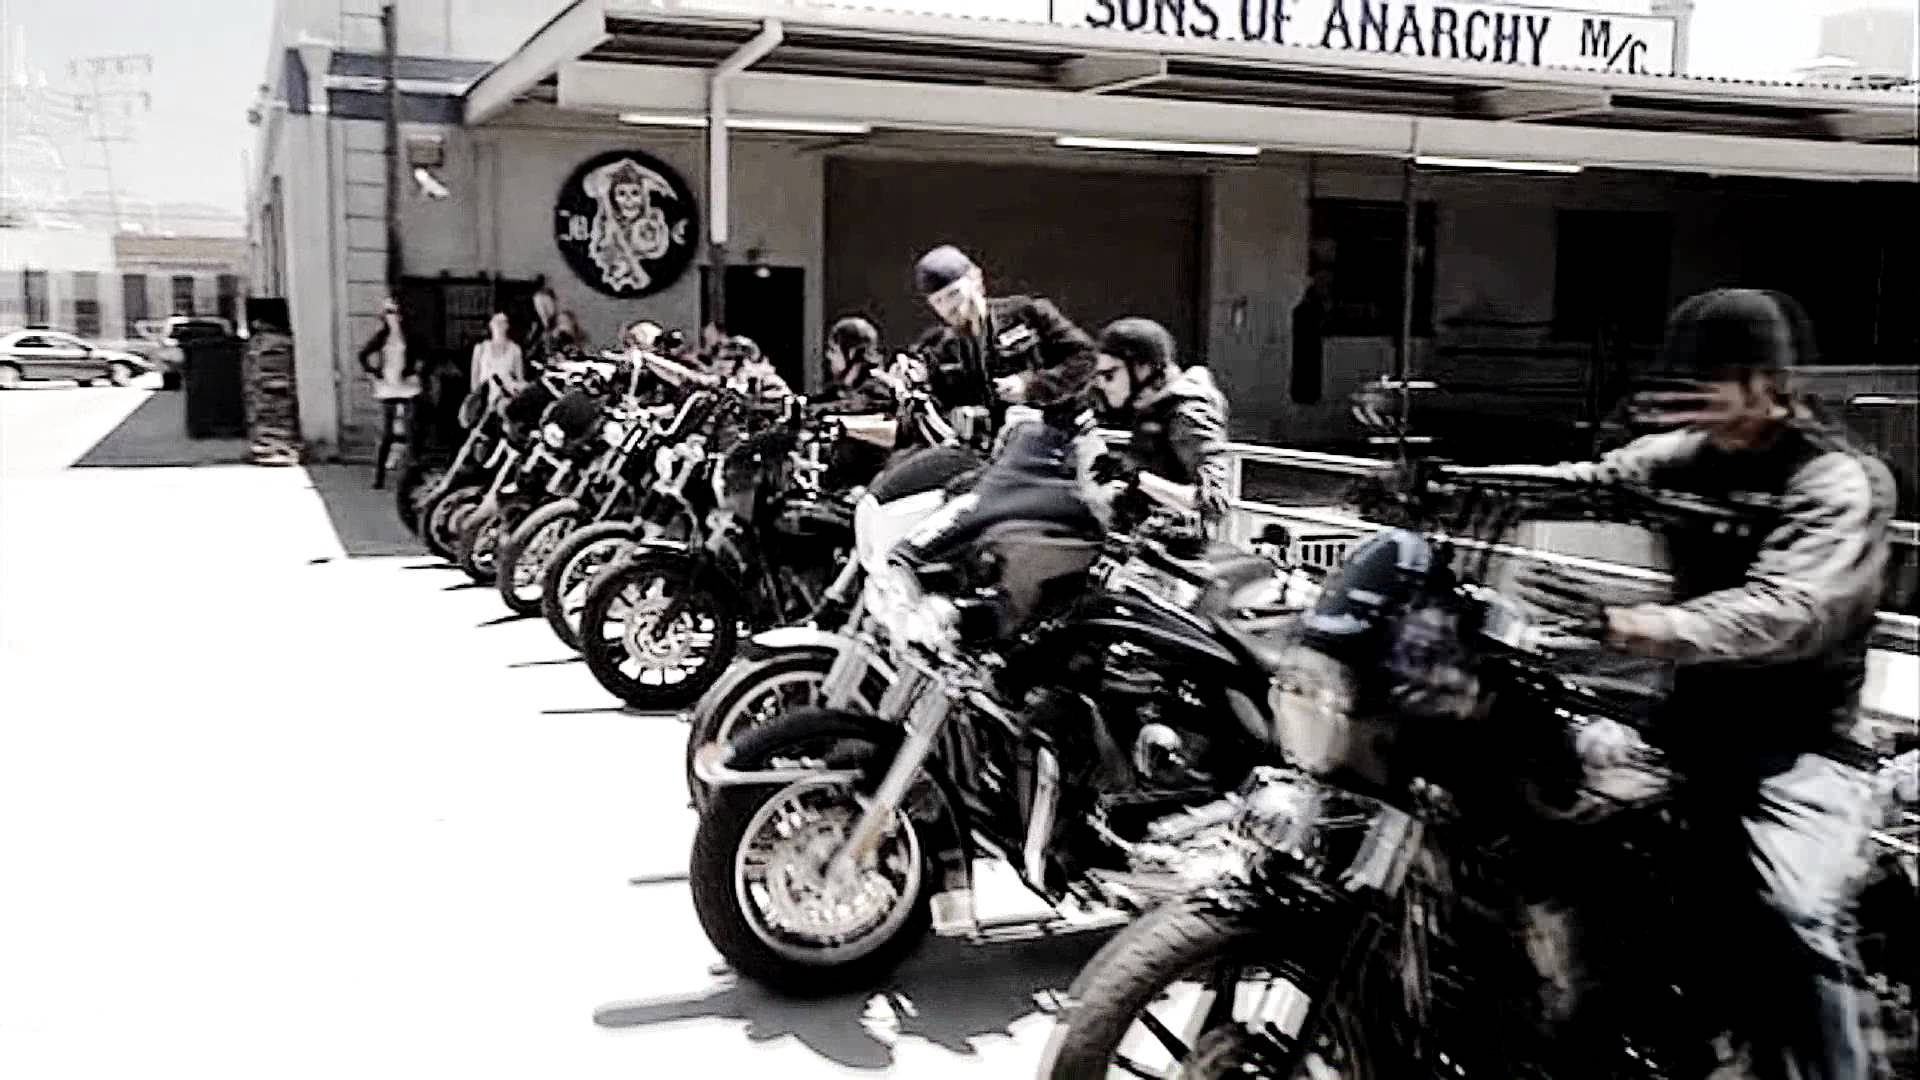 Sons Of Anarchy Wallpapers Free Posted By Michelle Tremblay